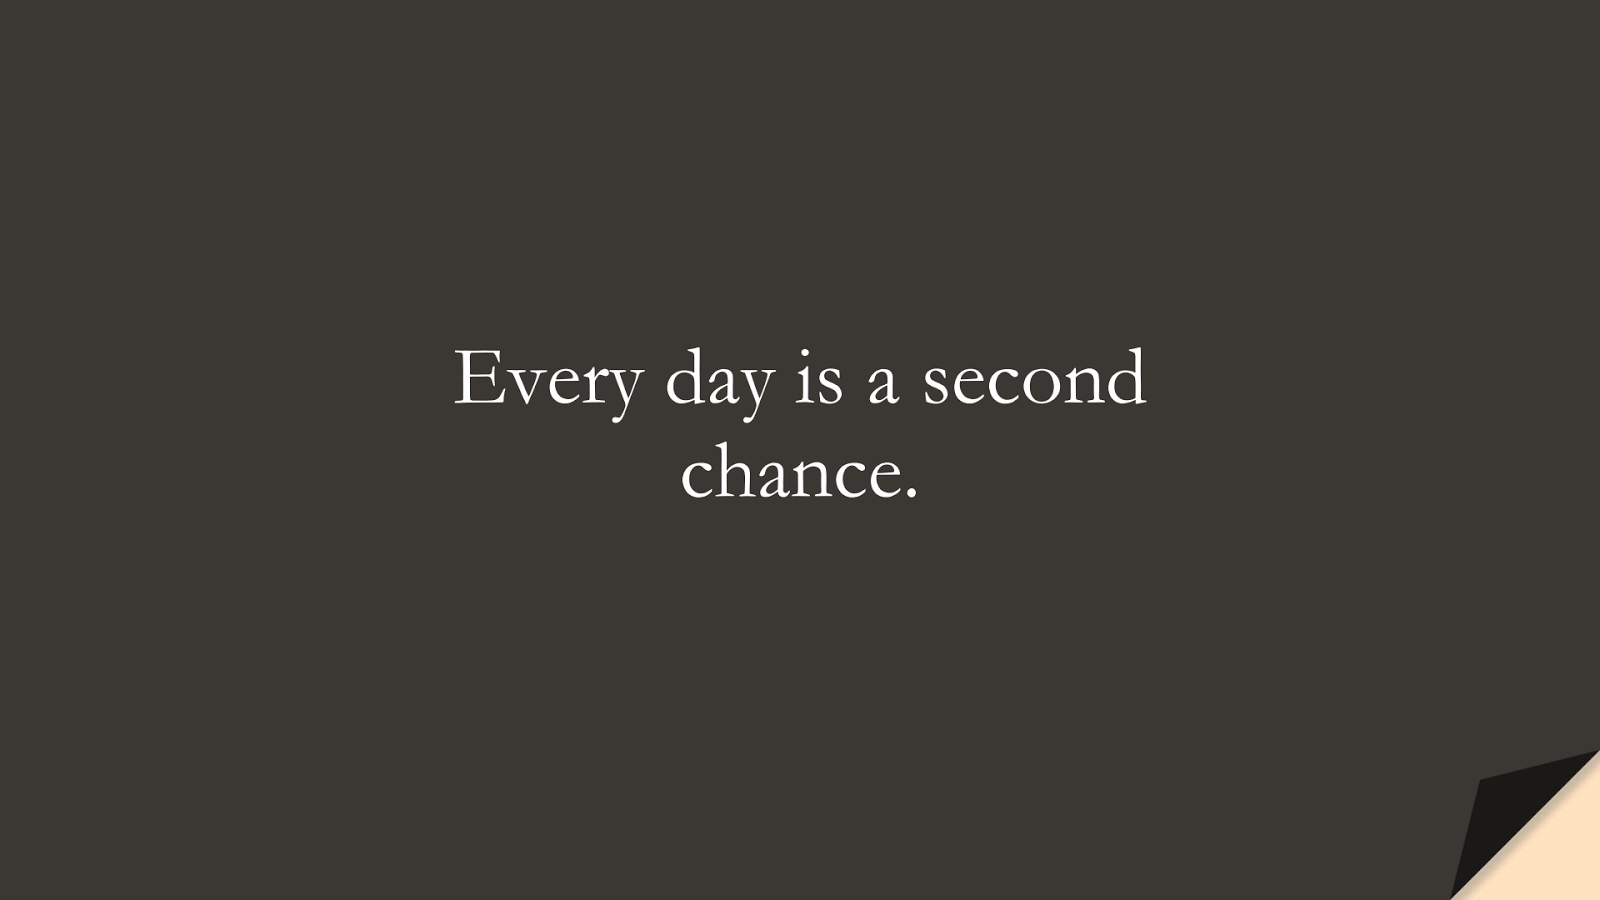 Every day is a second chance.FALSE